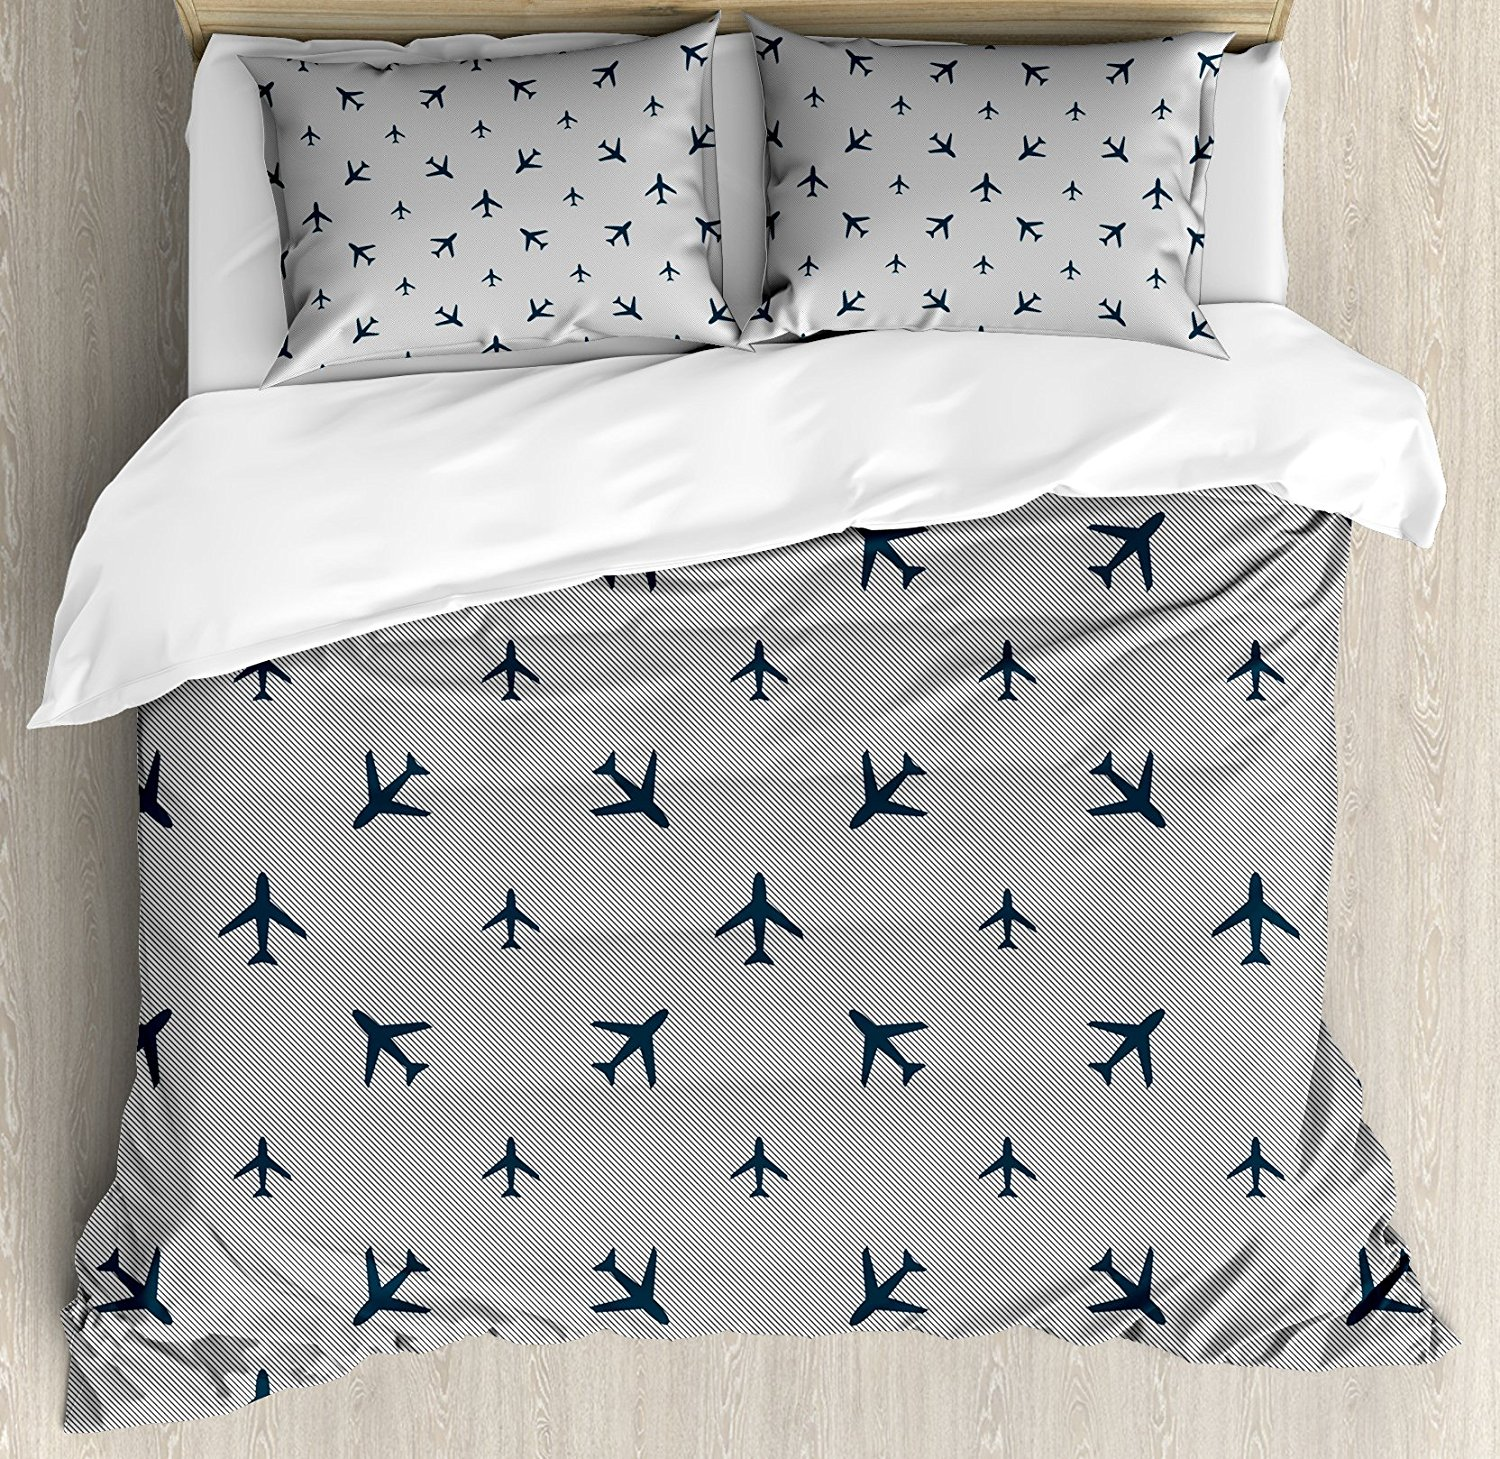 Airplane Duvet Cover Set Diagonal Stripes with Blue Travel Icons Silhouettes Vacation Aviation 4 Piece Bedding Set